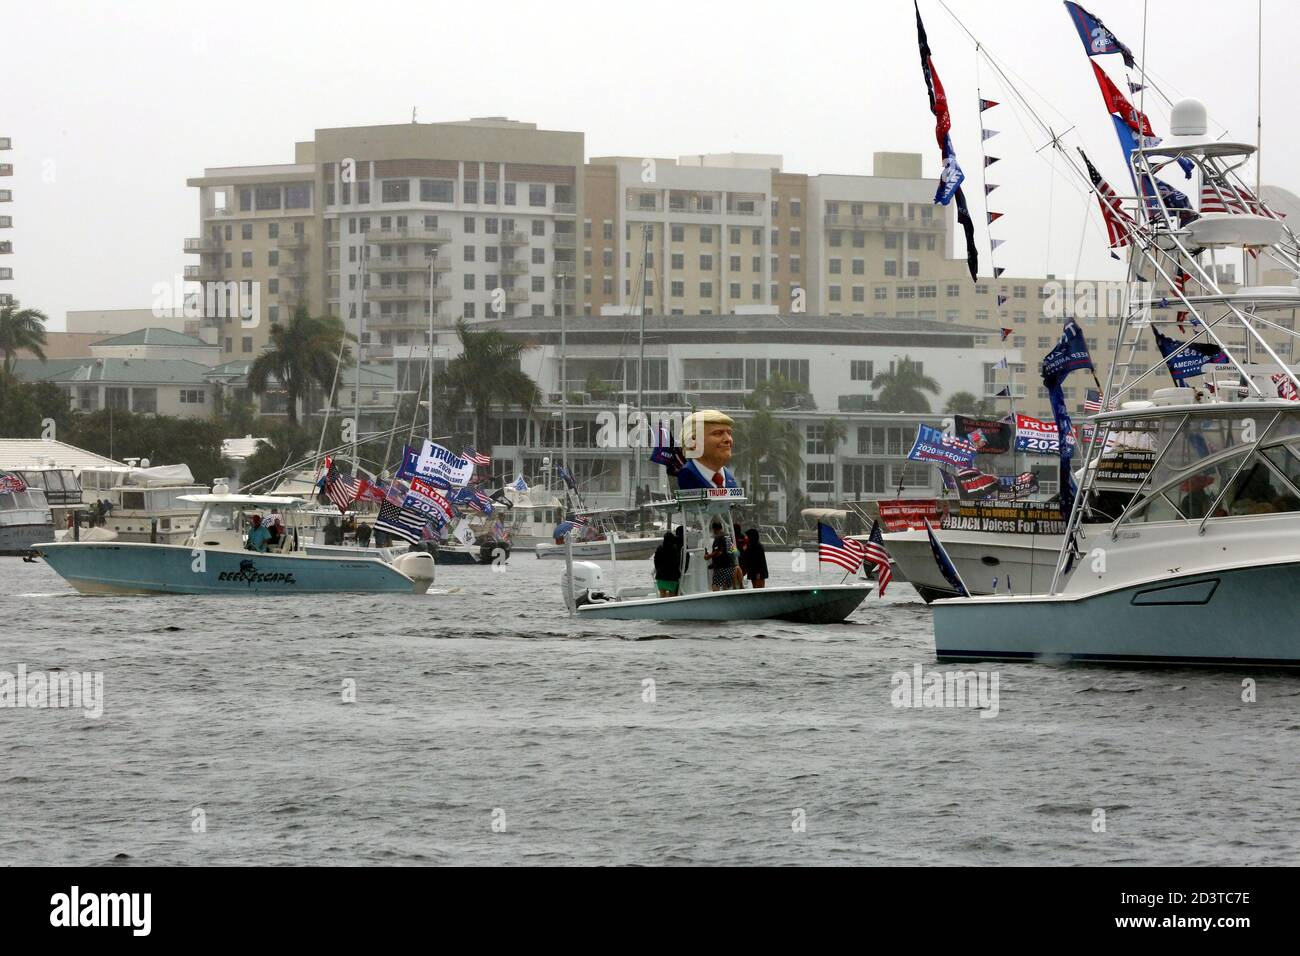 Donald Trump fans were out in their boats in droves during torrential rain to show their support during today's Trump 2020 Flotilla along the Intracoastal Waterways that began at Fort Lauderdale Sunrise Bay and ended at Boca Lake in Boca Raton with some sunshine.  The Avid supporters from 'Boaters For Trump South Florida' proudly Promoted the COVID stricken President for his 2020 Re-election during today's Trump 2020 Flotilla.  Jim Norton (US House of Rep), Catherine McBreen (Supervisor Board of Elections), Brian Norton (State Senator)and Carla Spalding (running against Debbie Wasserman-Schult Stock Photo